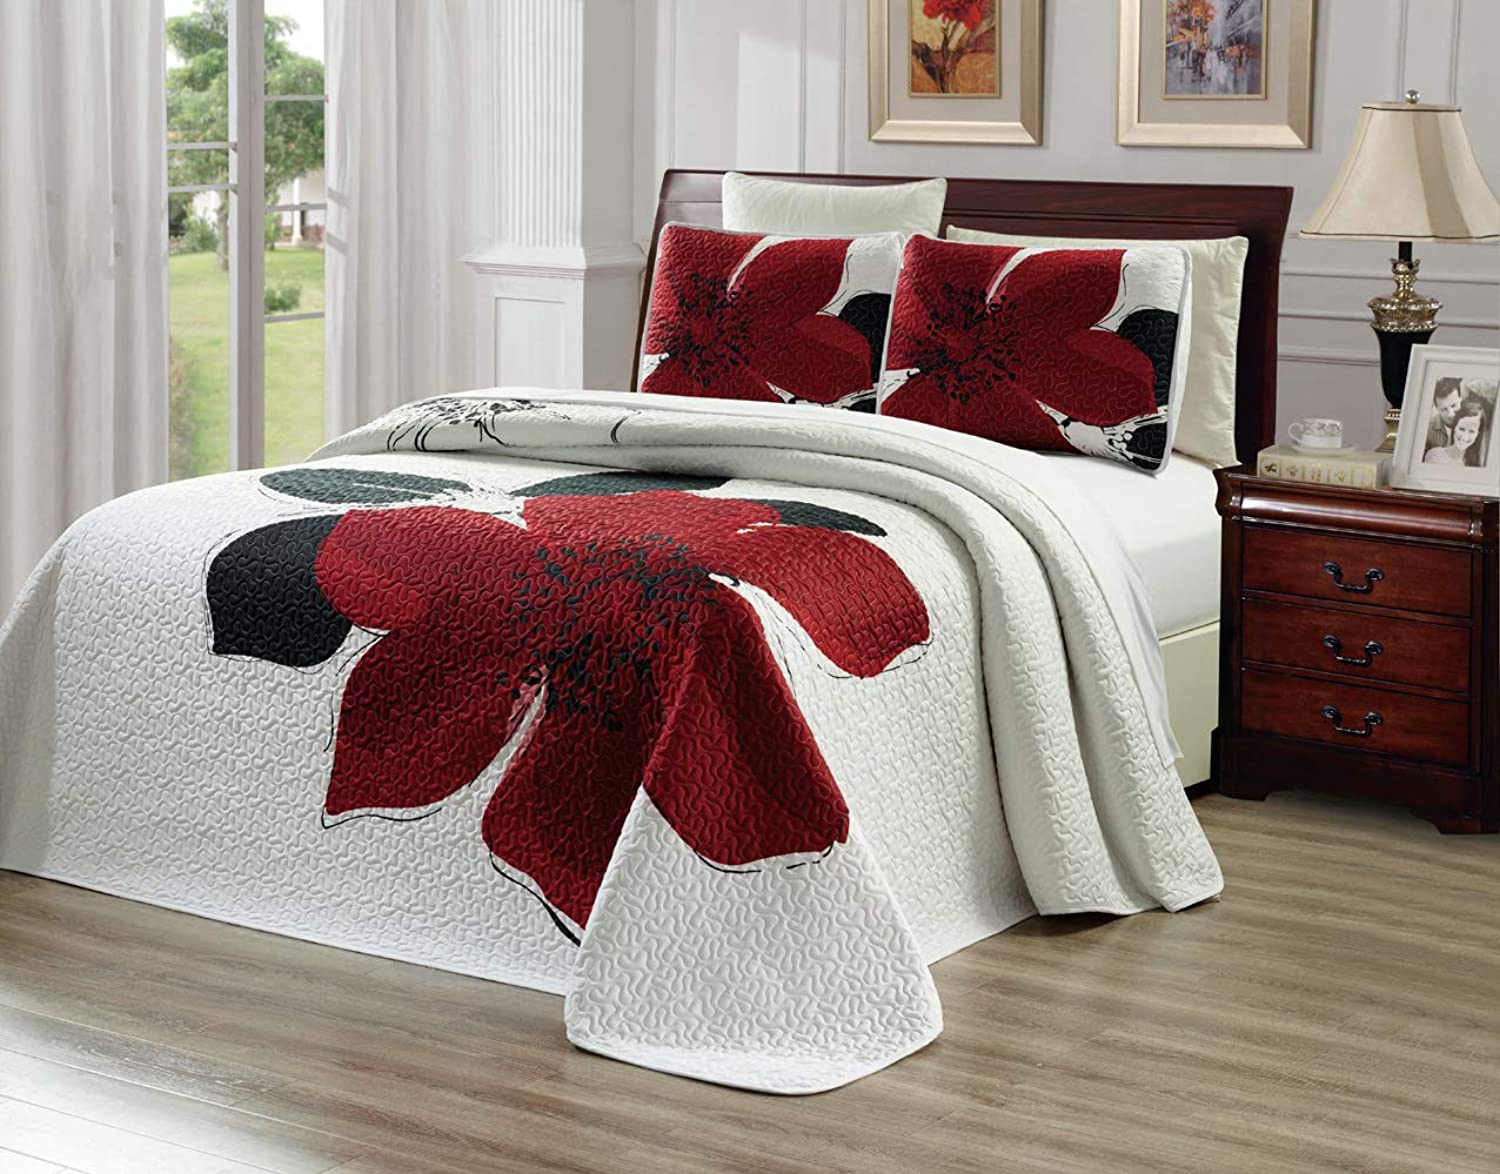 GrandLinen 2-Piece Fine Printed 66  X 95  Quilt Set Reversible Bedspread Coverlet Twin Twin XL Size Bed Cover (Burgundy Red, Black, White, Floral)